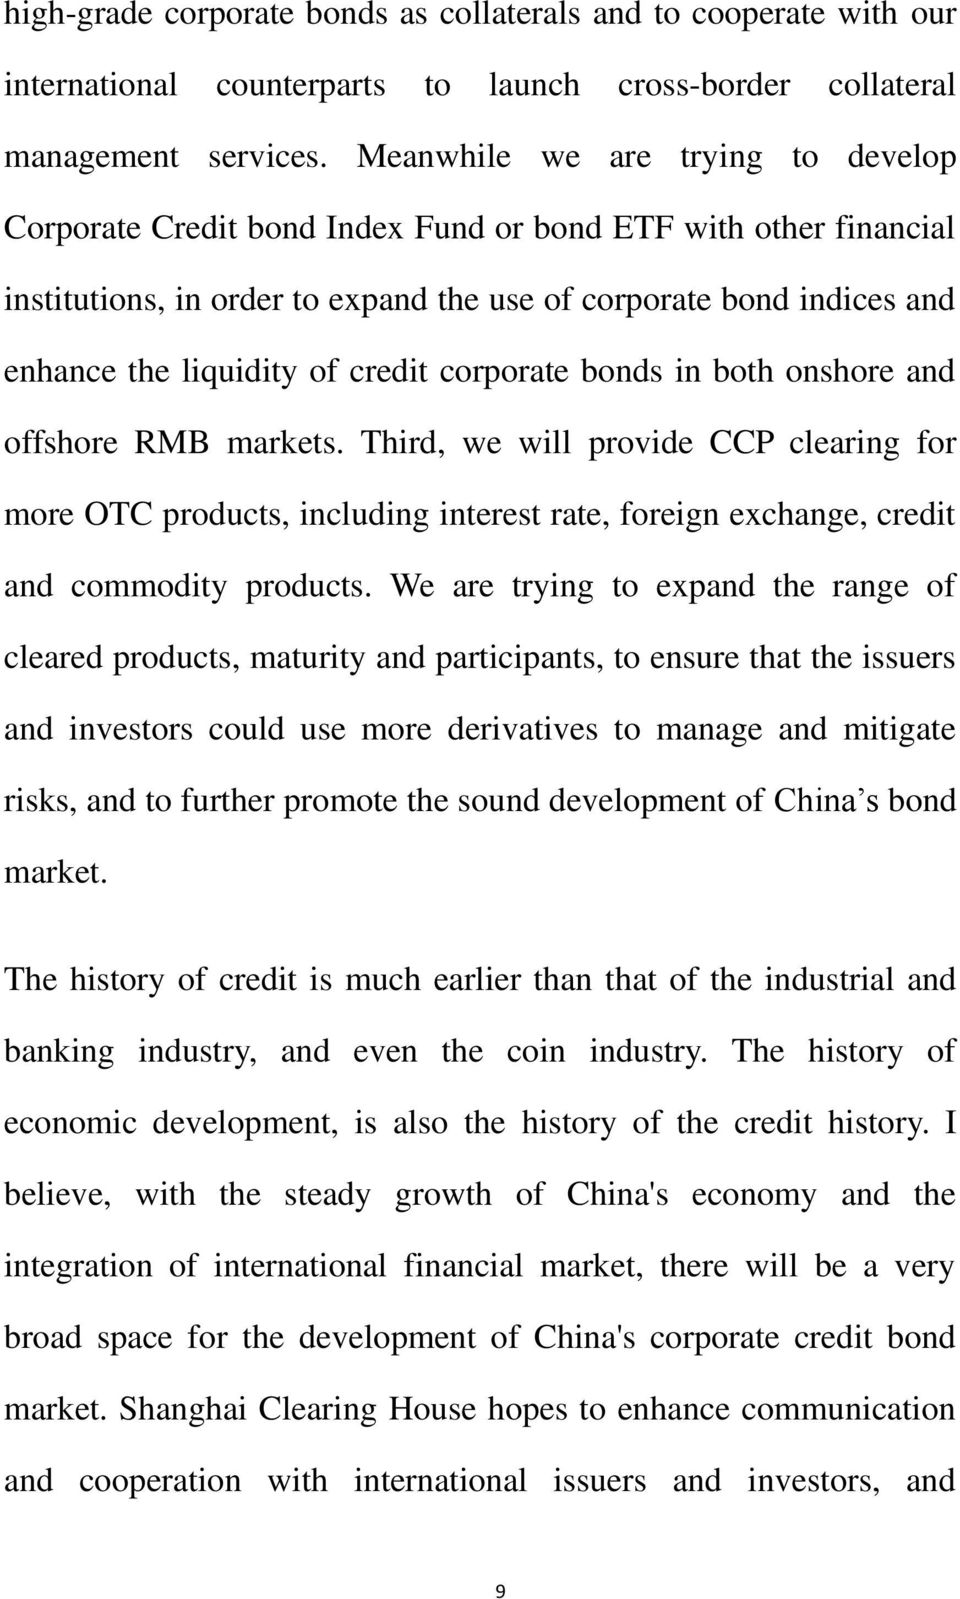 credit corporate bonds in both onshore and offshore RMB markets. Third, we will provide CCP clearing for more OTC products, including interest rate, foreign exchange, credit and commodity products.